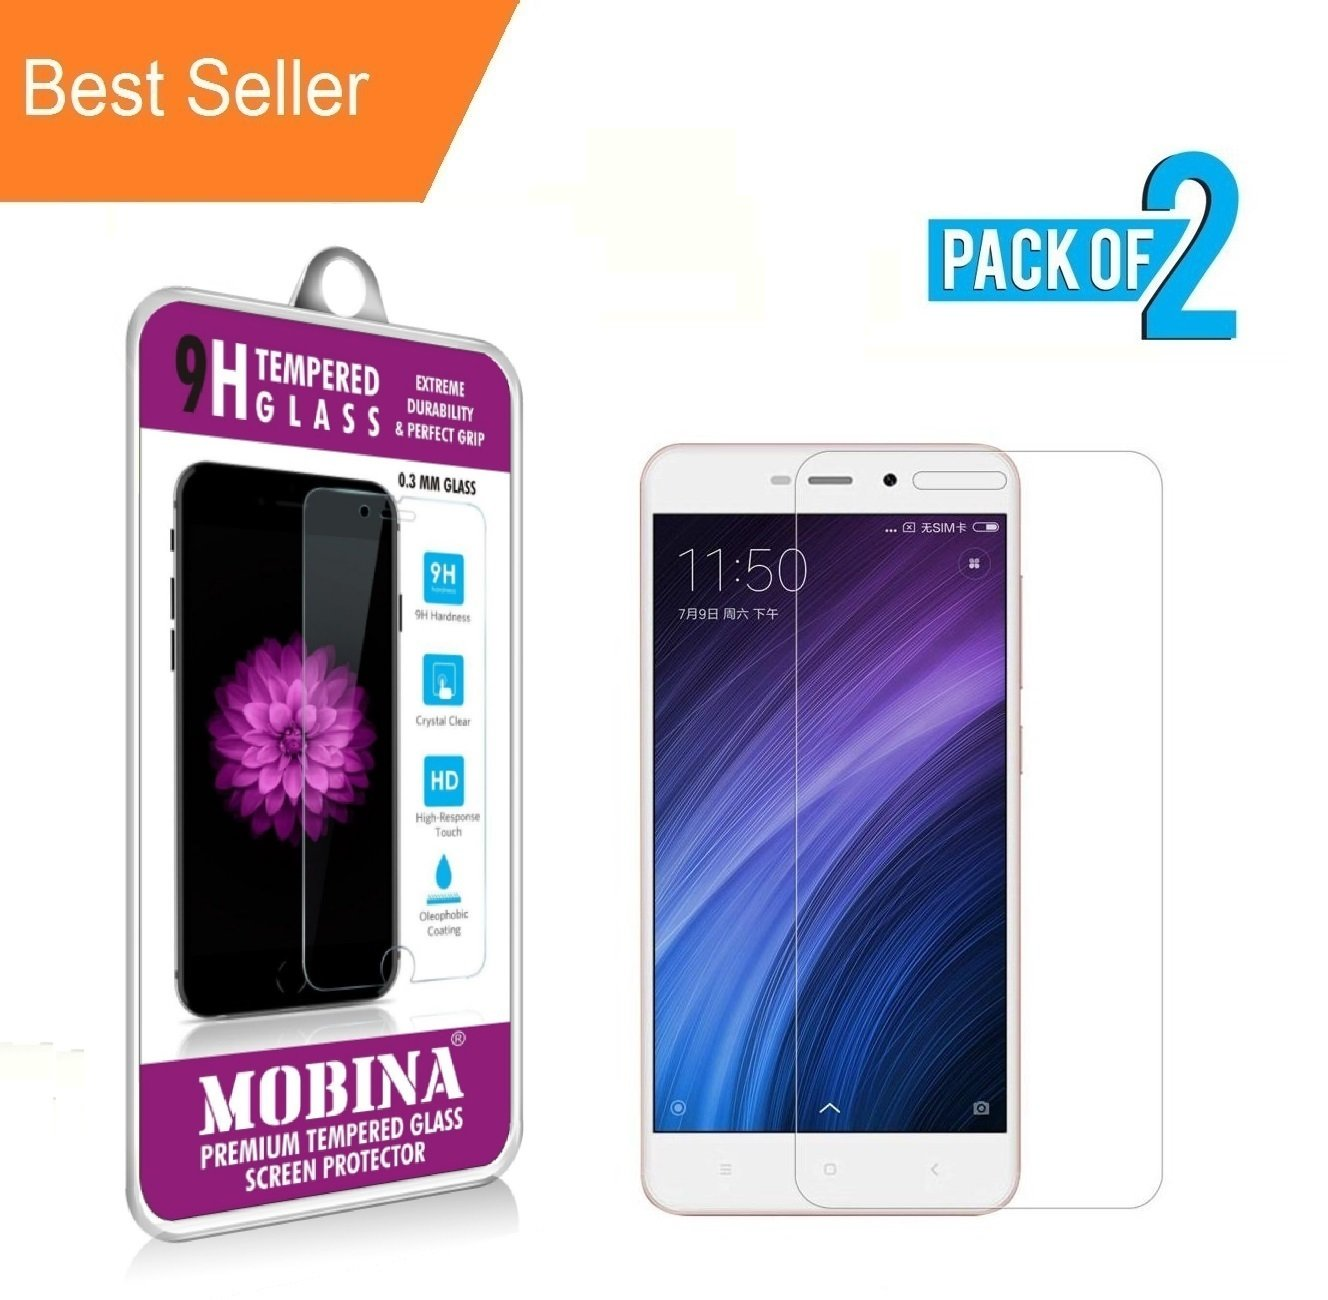 Mobina Xiaomi Mi Redmi 4a Premium Quality Curved Tempered Screen Backdoor Protector Guard Pack Of 2 Buy